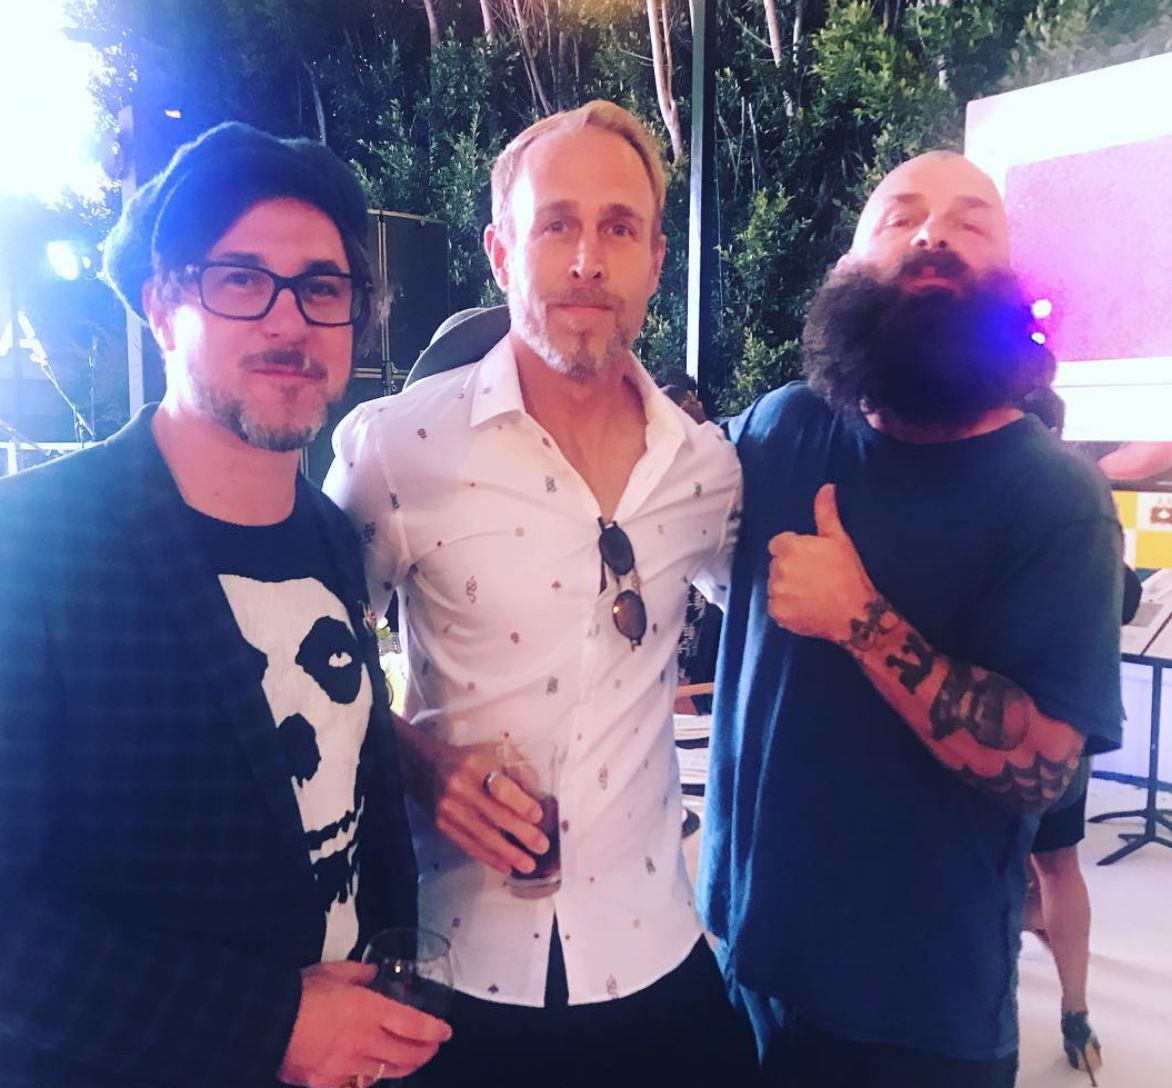 Corin Hardy, James Verbicky + Tim Armstrong, contributing artists to the Silverlake Conservatory of Music (Los Angeles, October 2018)